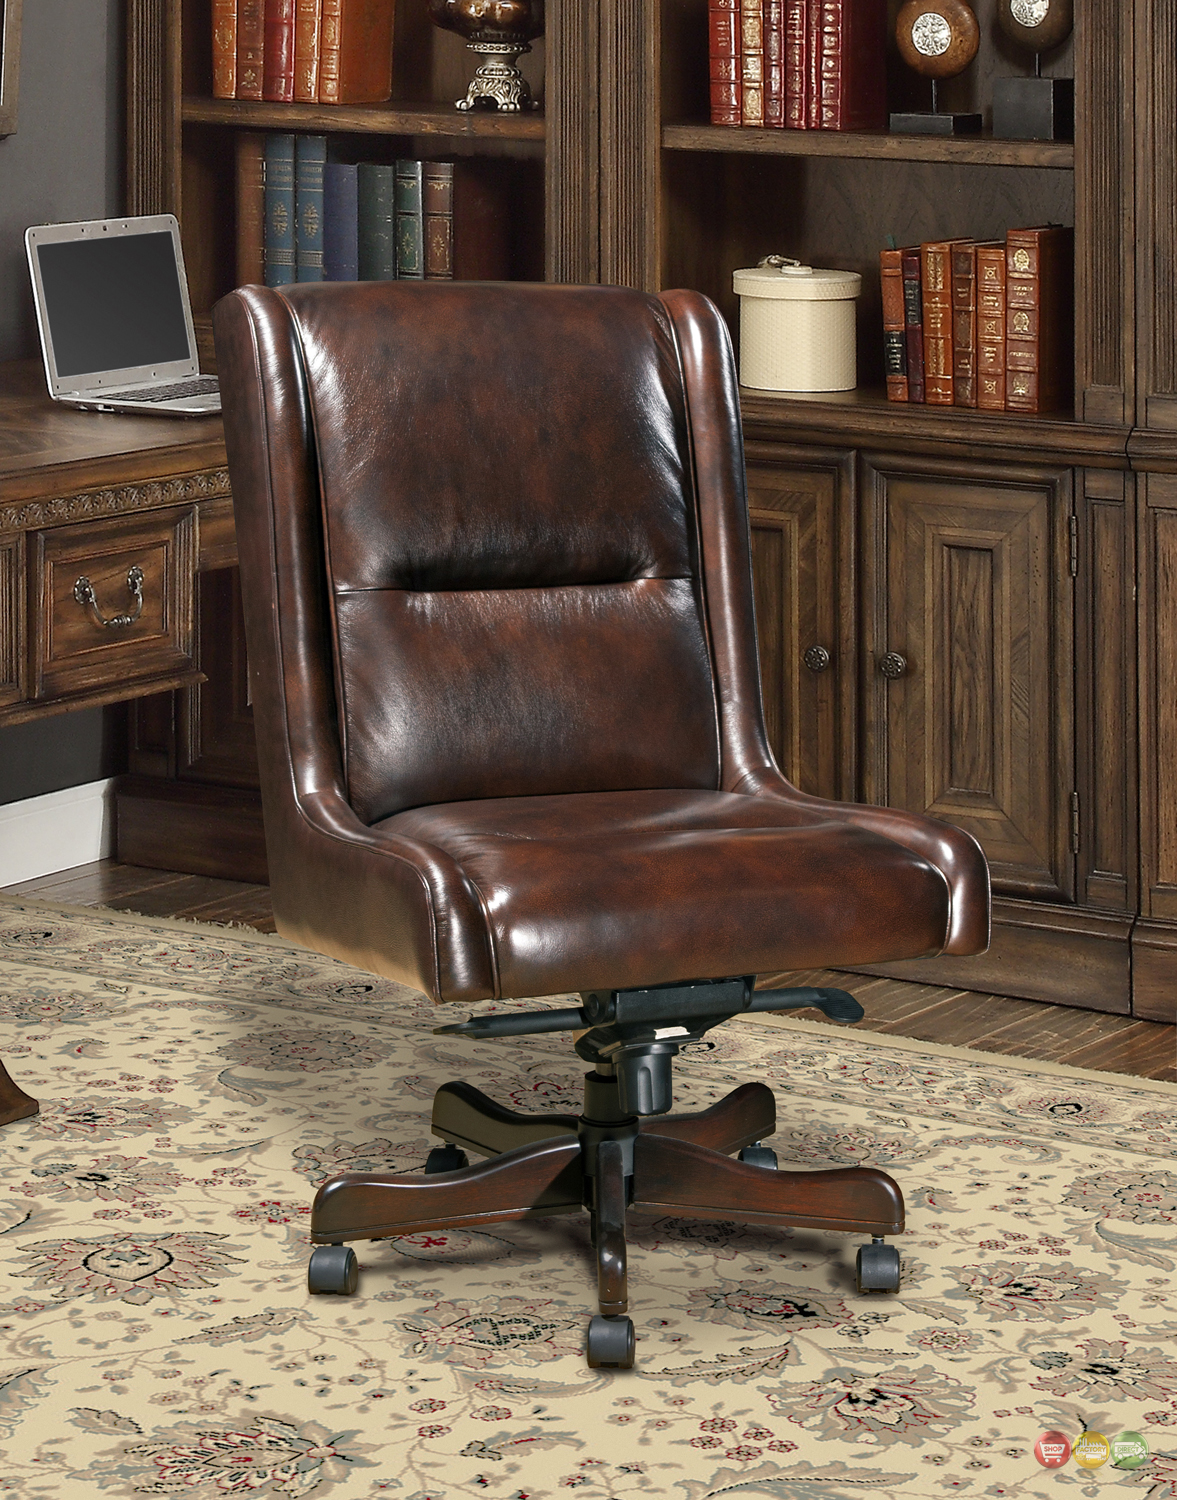 Armless Leather Desk Chair Black Leather Conference  : cigar brown genuine leather armless desk chair traditional office furniture dc 108 ci 3 from mermaidsofthelake.com size 1177 x 1500 jpeg 1637kB